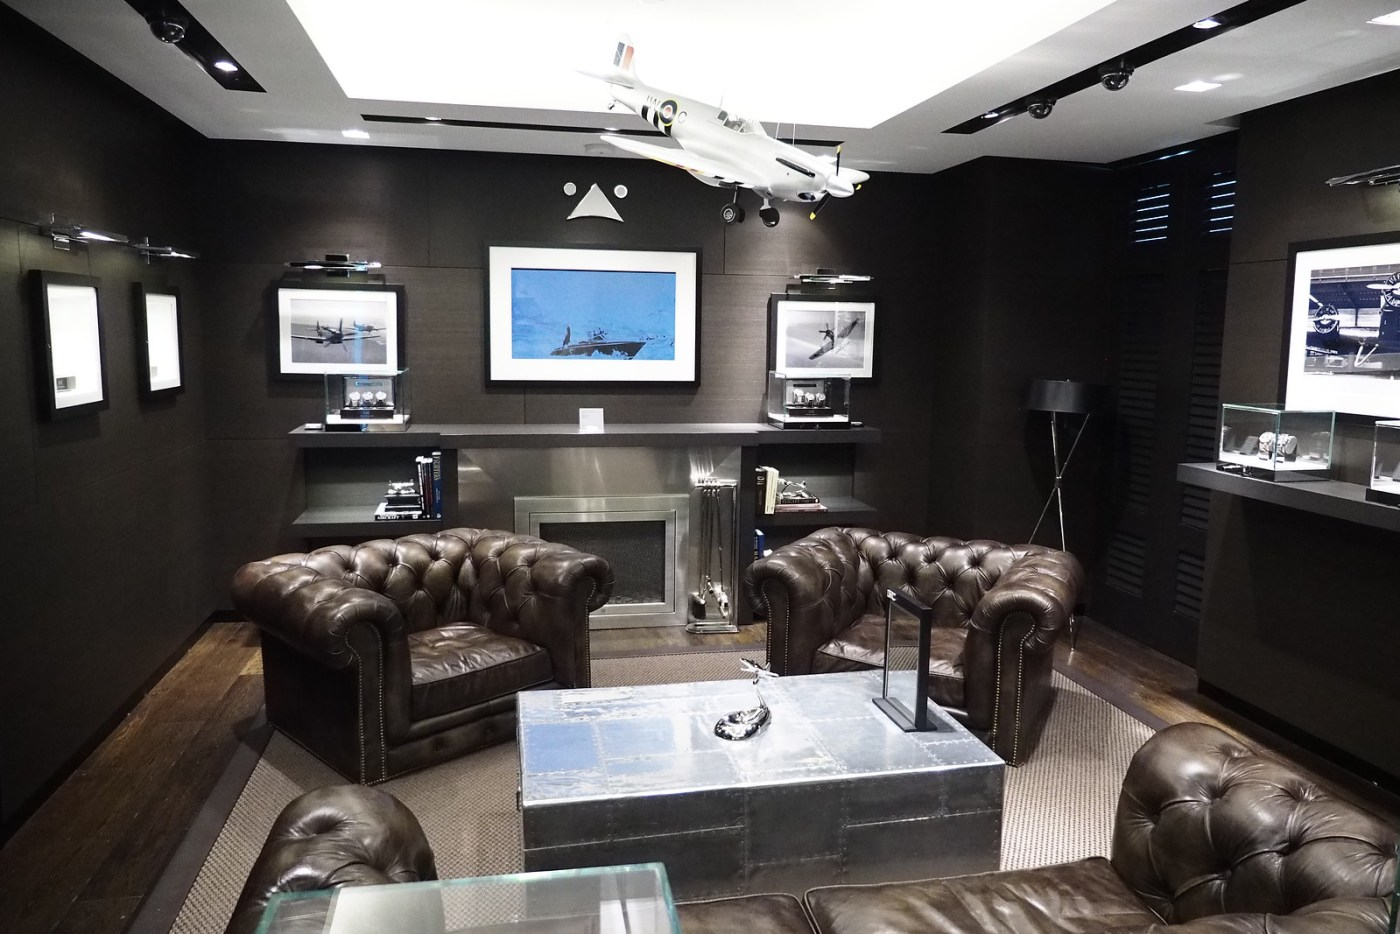 IWC Pilot Lounge at 535 Madison Avenue